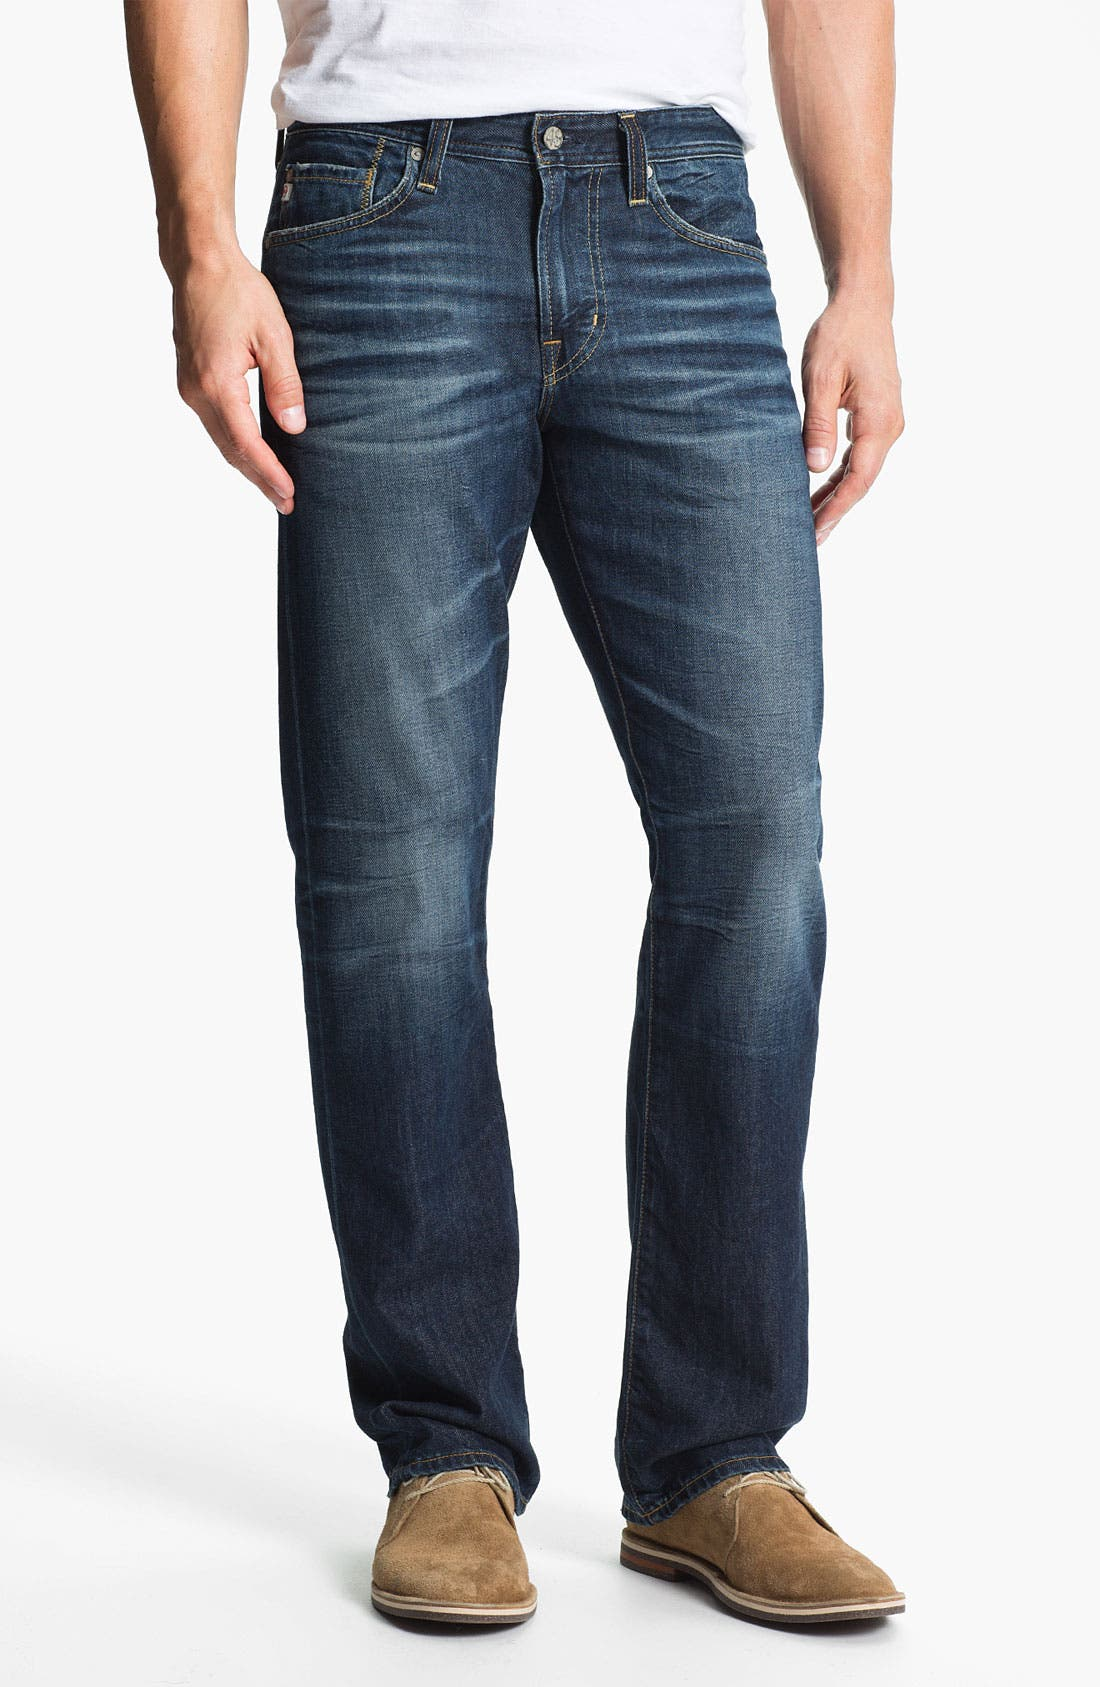 Alternate Image 1 Selected - AG Jeans 'Protégé' Straight Leg Jeans (8-Year Lounge)